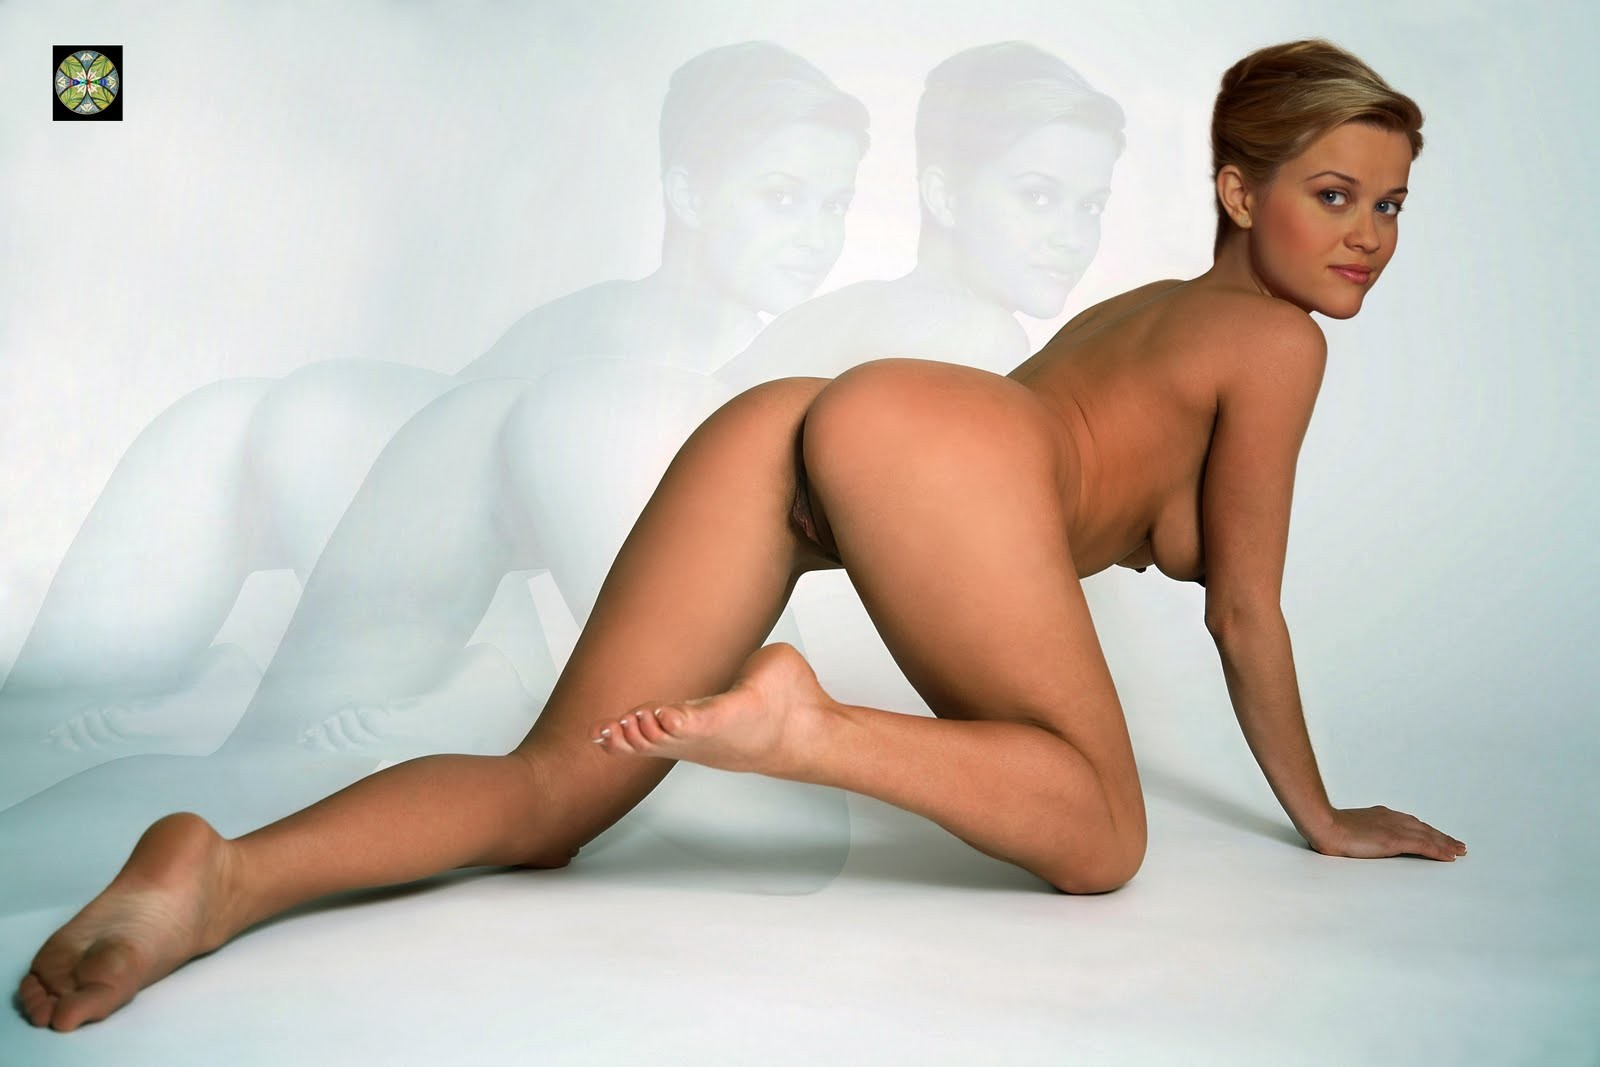 Reese Witherspoon Nude Hot and Bent Over